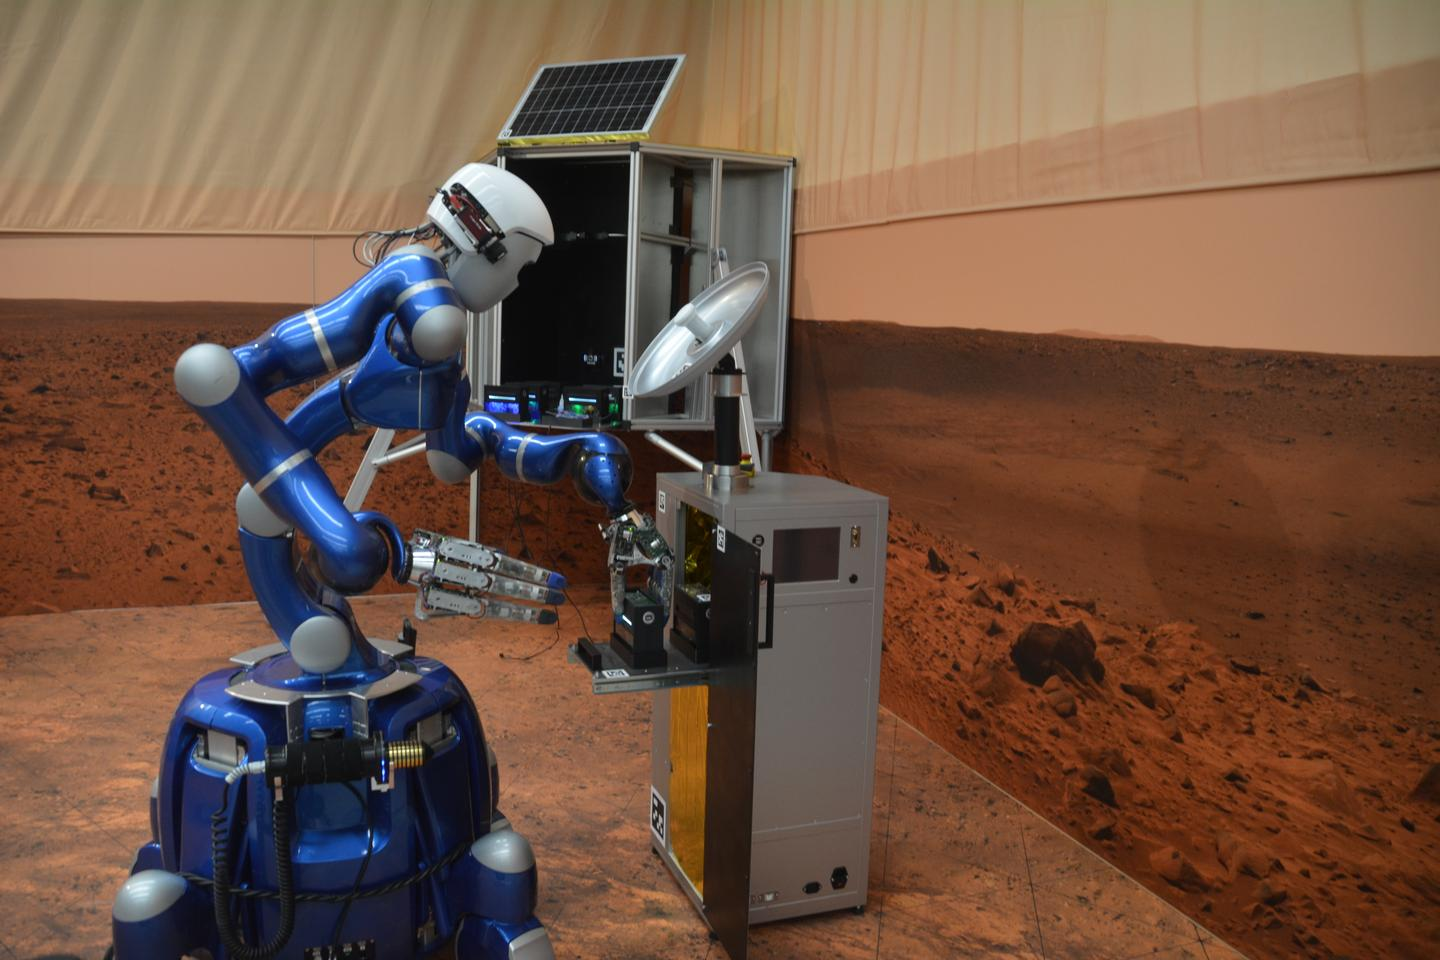 DLR's Rollin' Justin robot has been remotely operated from the ISS